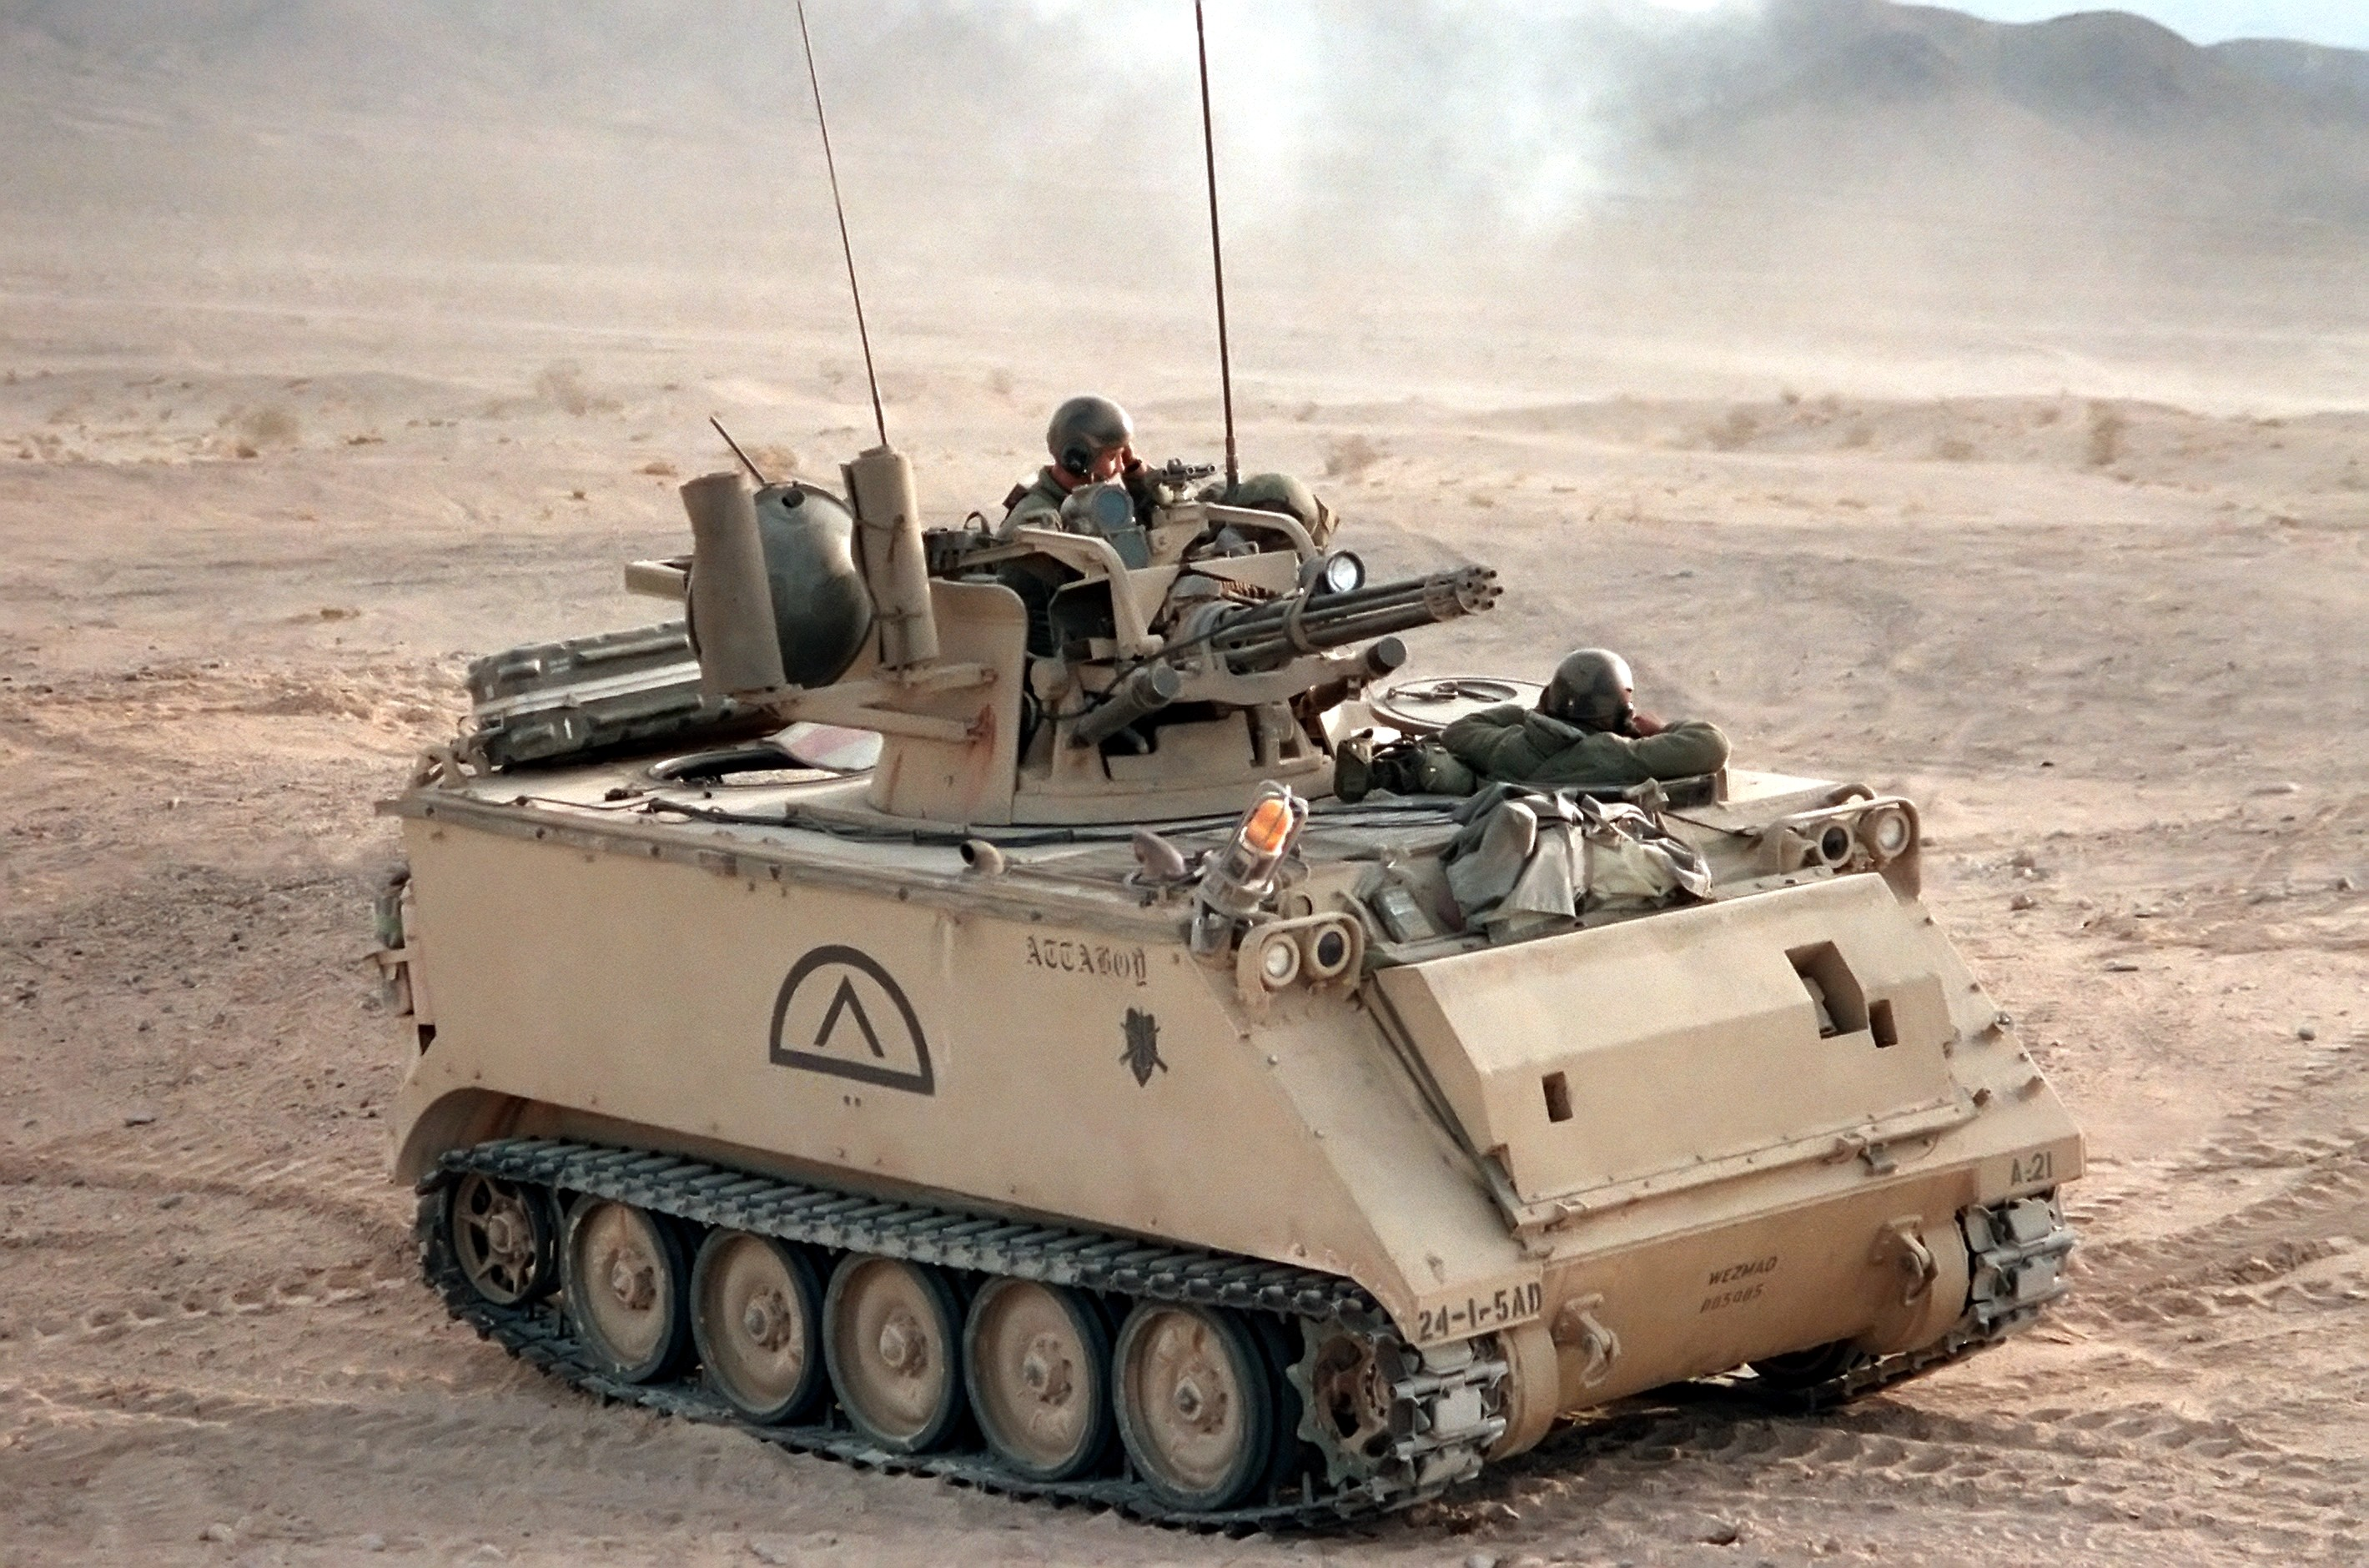 Sexiest anti-aircraft vehicles/weapons. - Page 2 - Project Reality Forums